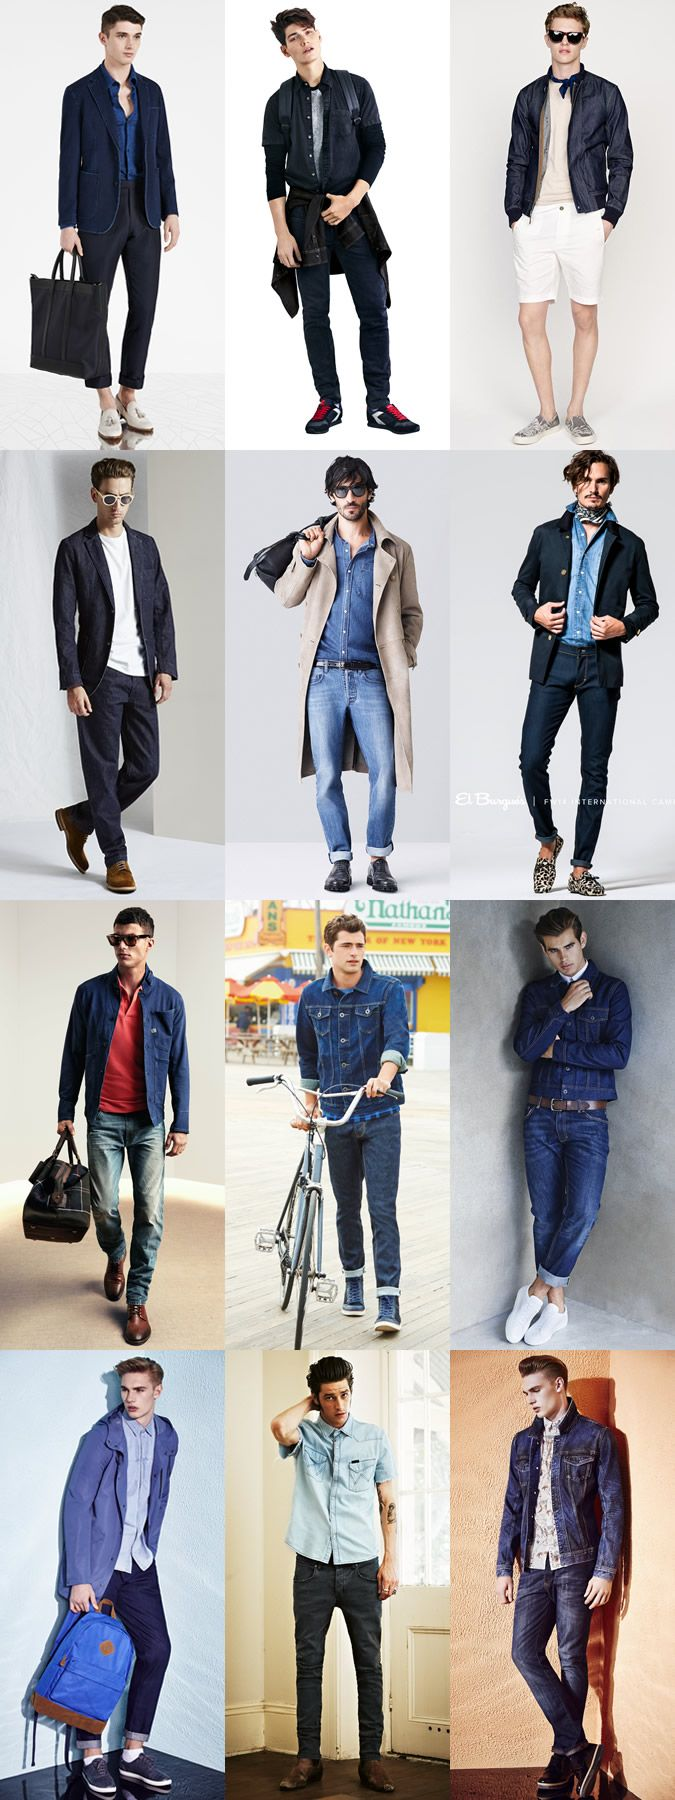 5 Trends To Master For 2015 Spring/Summer : 2) Double (Denim) Duty Lookbook Inspiration #streetstyle